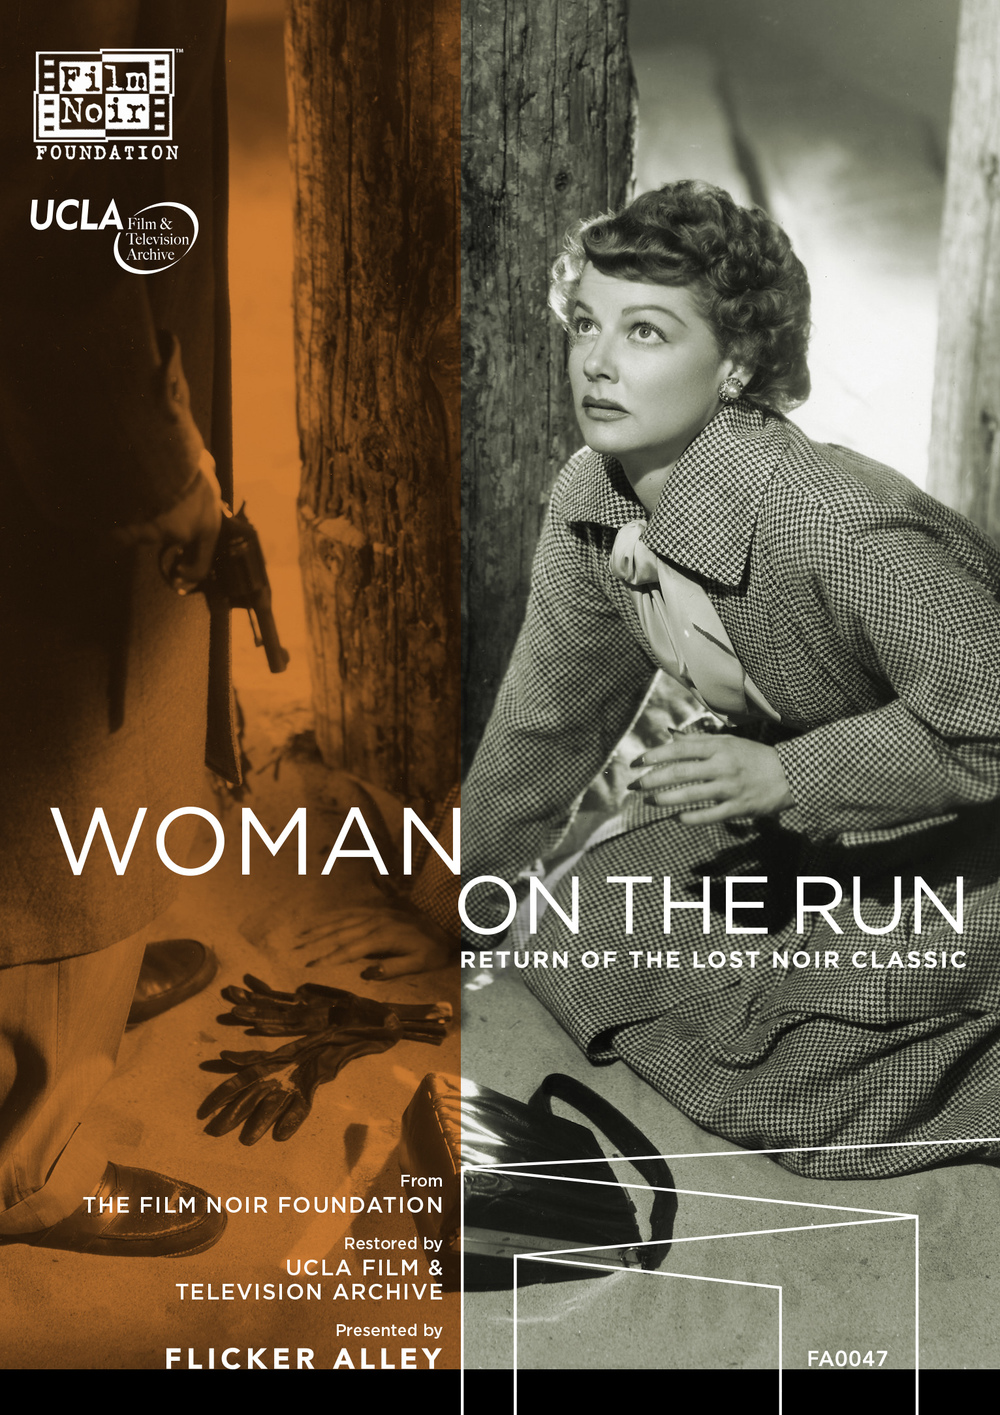 Woman+on+the+run-2.jpg